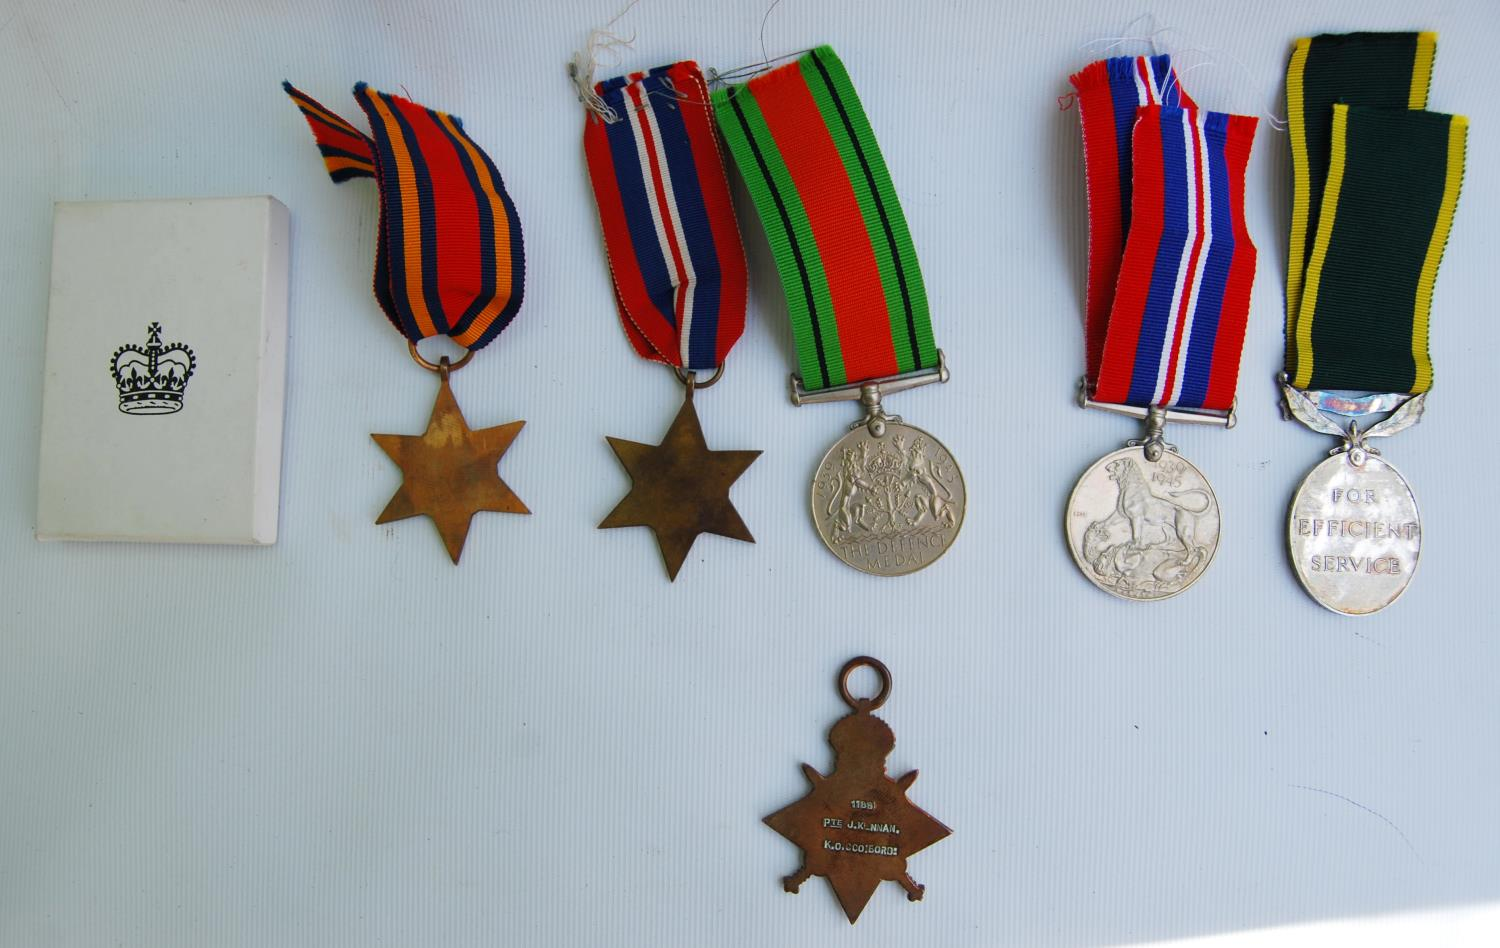 World War I medal group for Private D Kennan, Royal Scots, 3189854, Territorial Efficient Service - Image 3 of 3